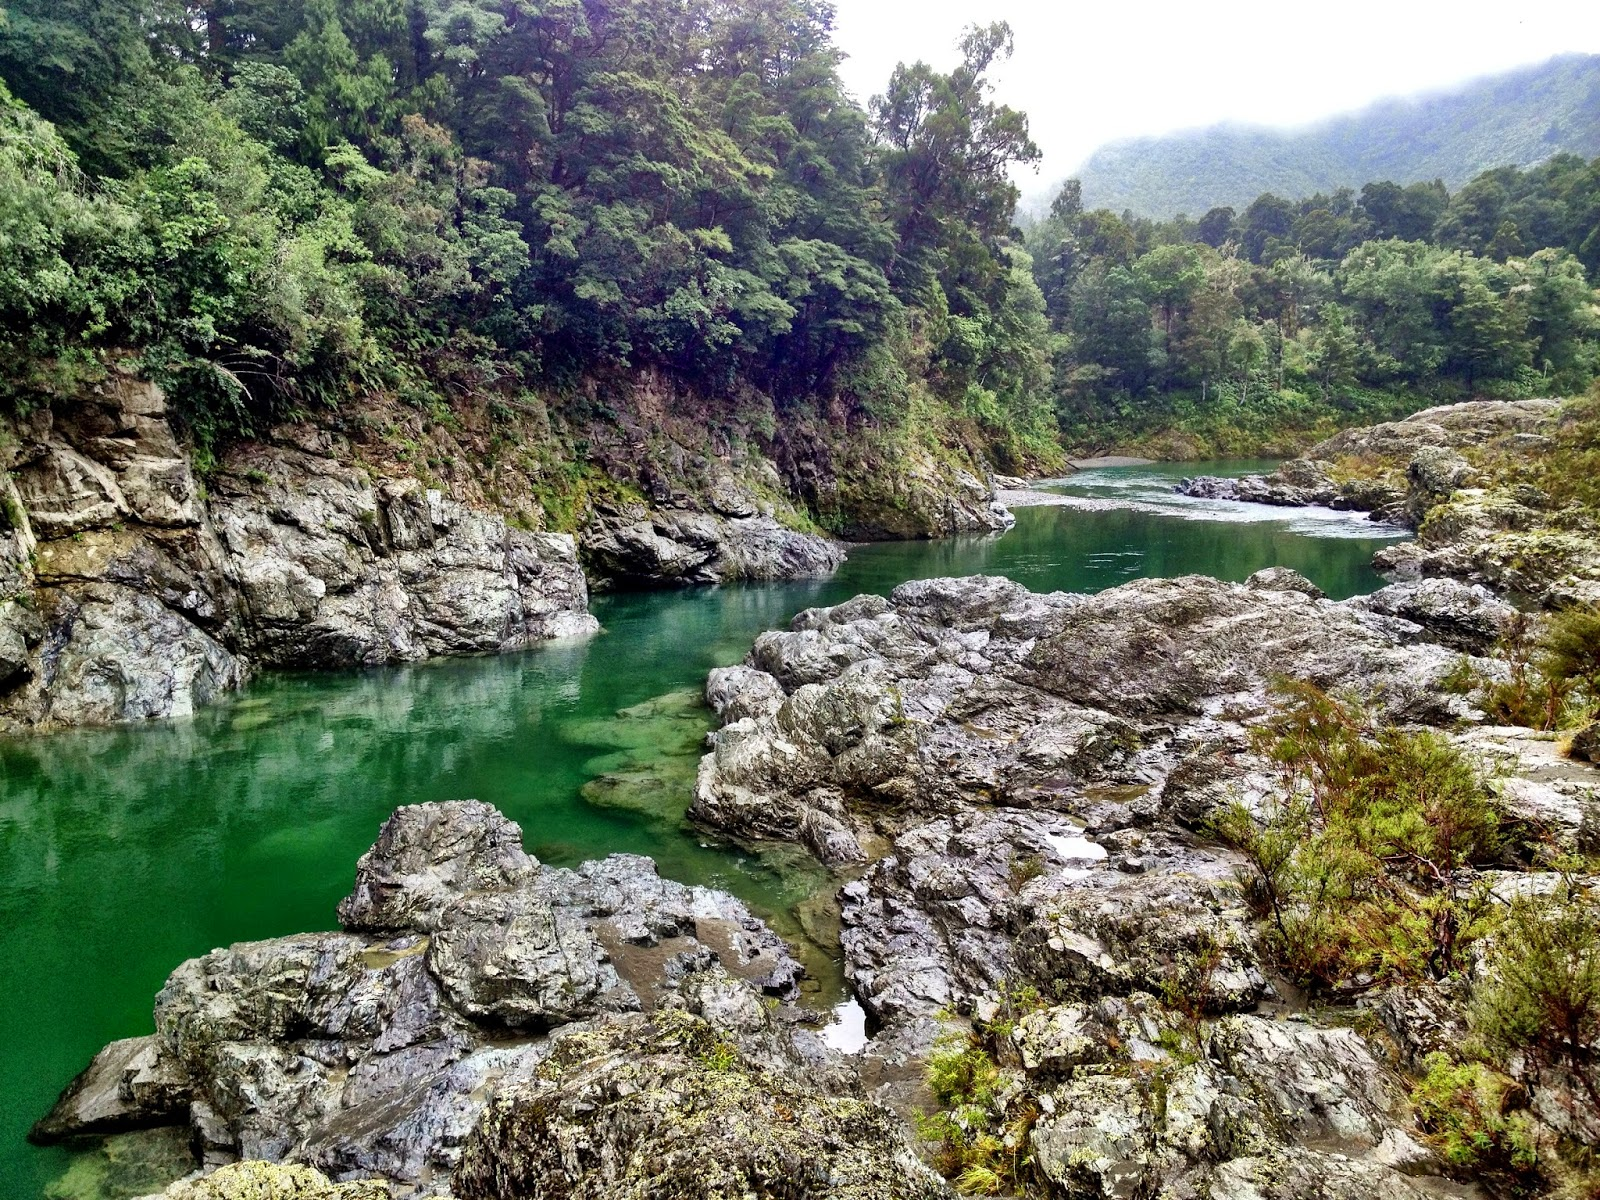 The view from Pelorus Bridge, New Zealand